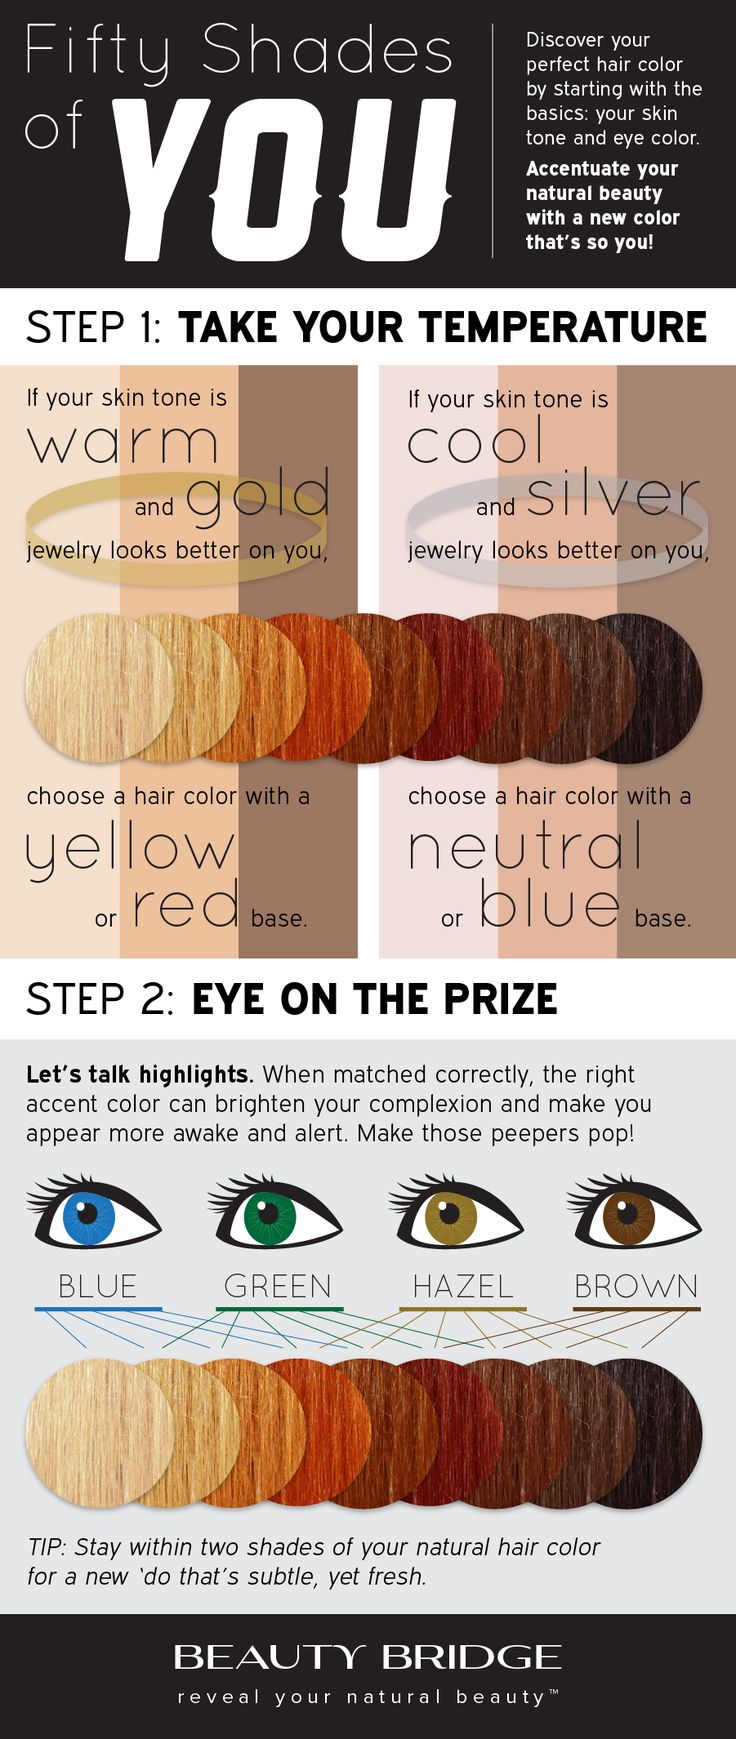 Choosing the right hair color for you, starting with the basics: your skin tone and eye color